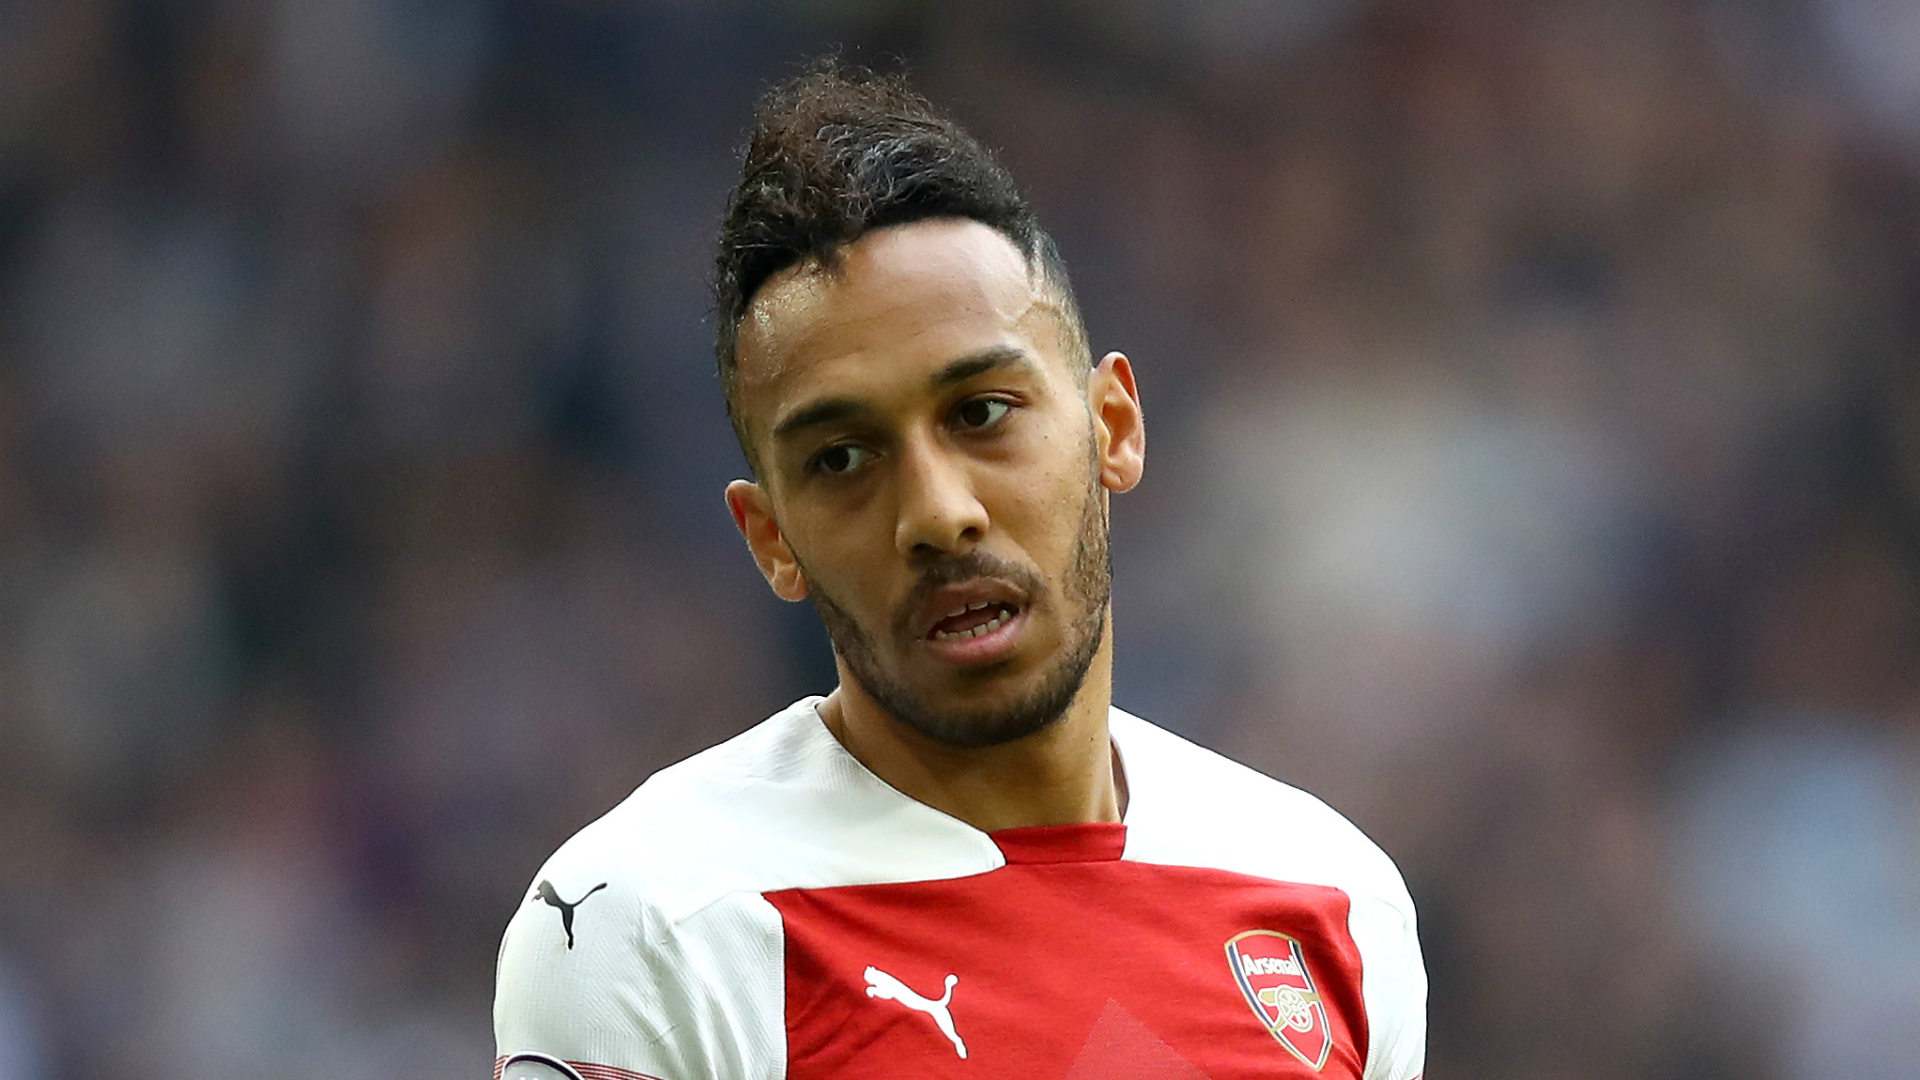 Arsenal's Aubameyang upset by racist abuse in English football